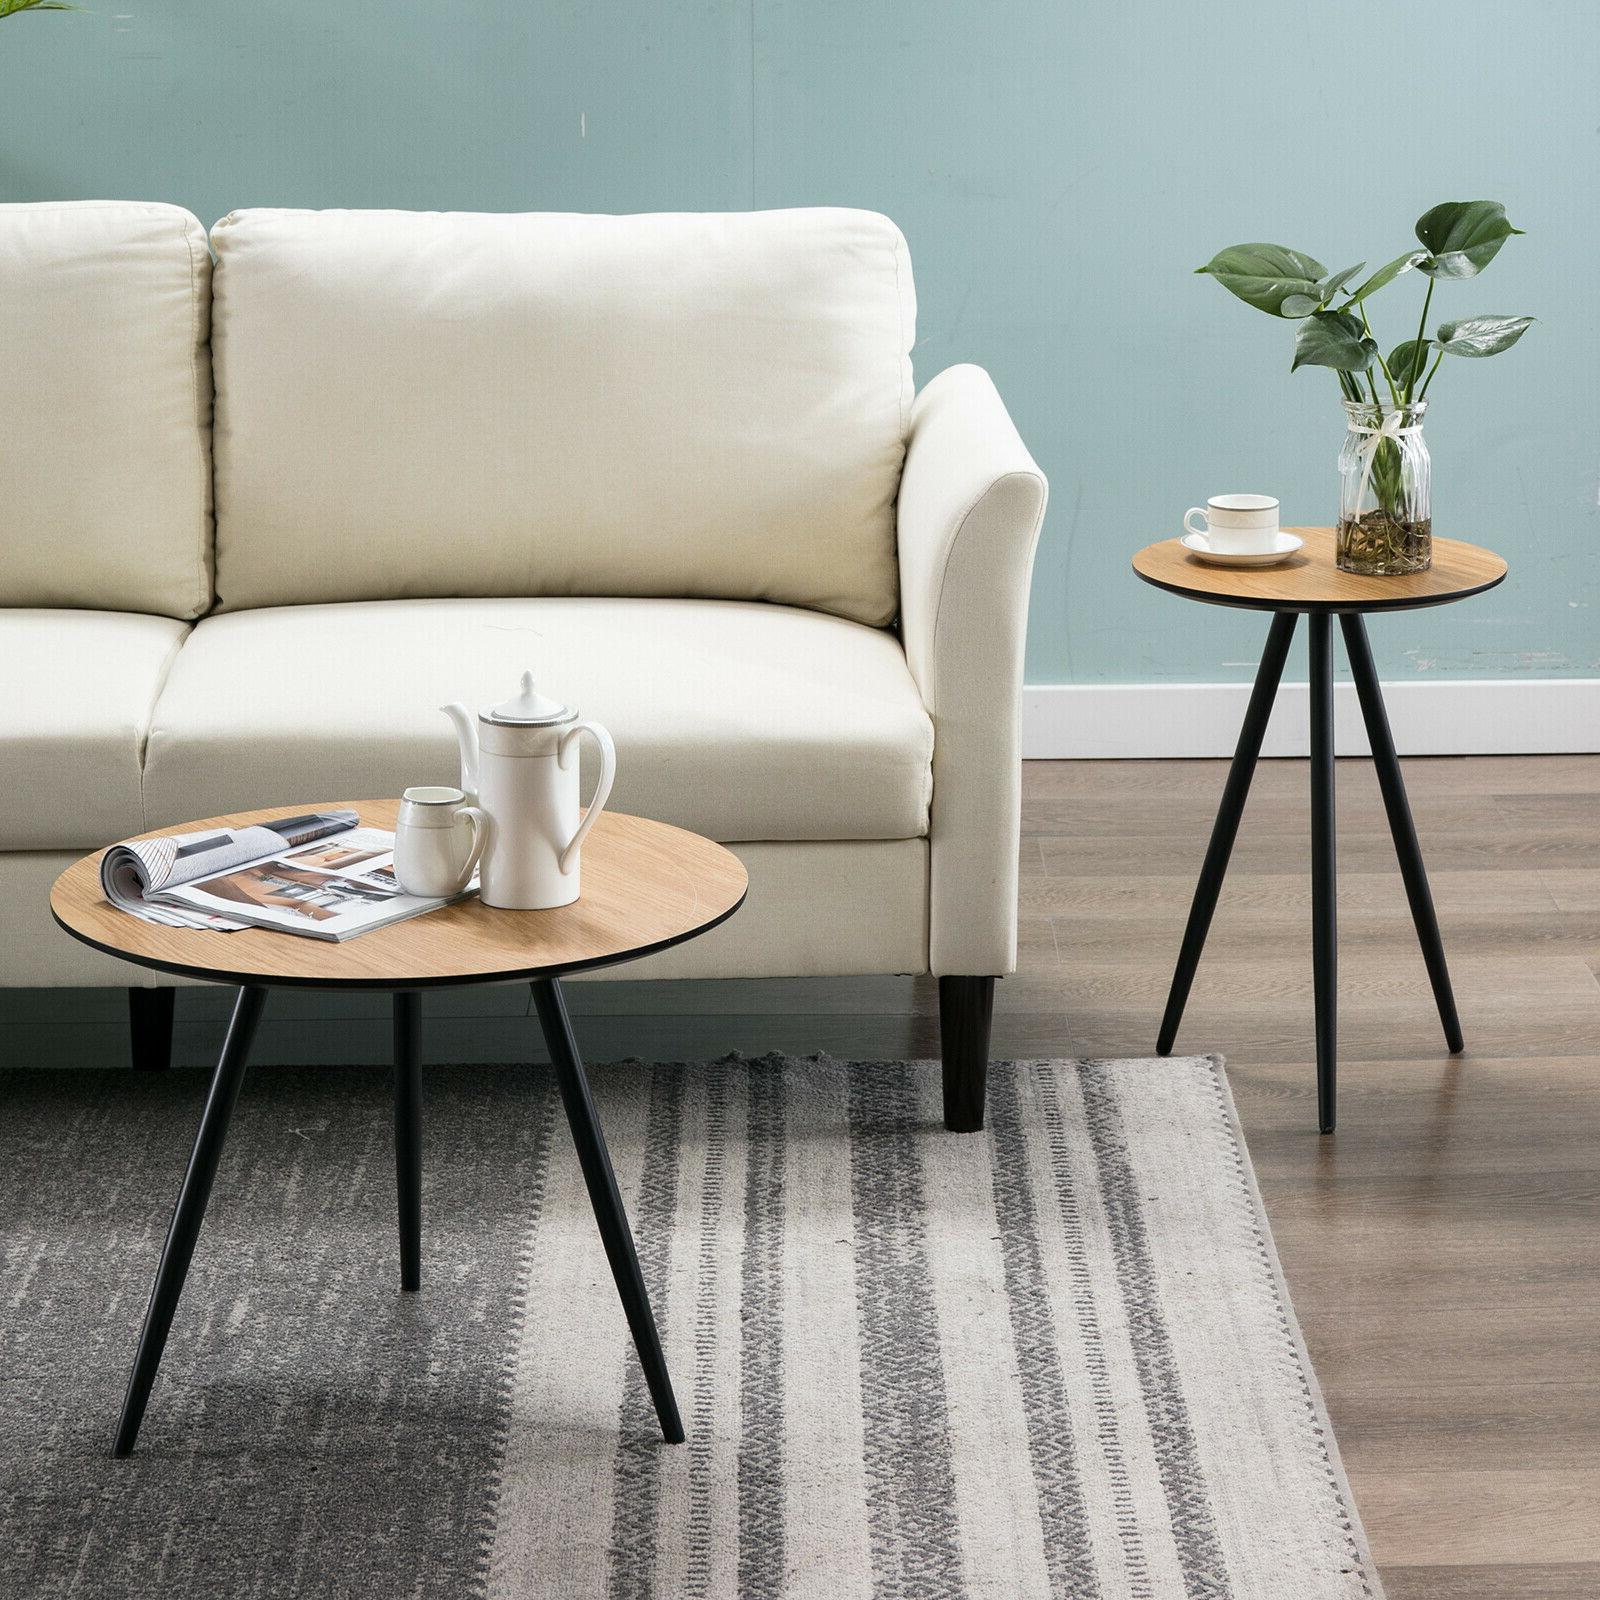 Modern Round Small Sofa Side End Side Legs Room